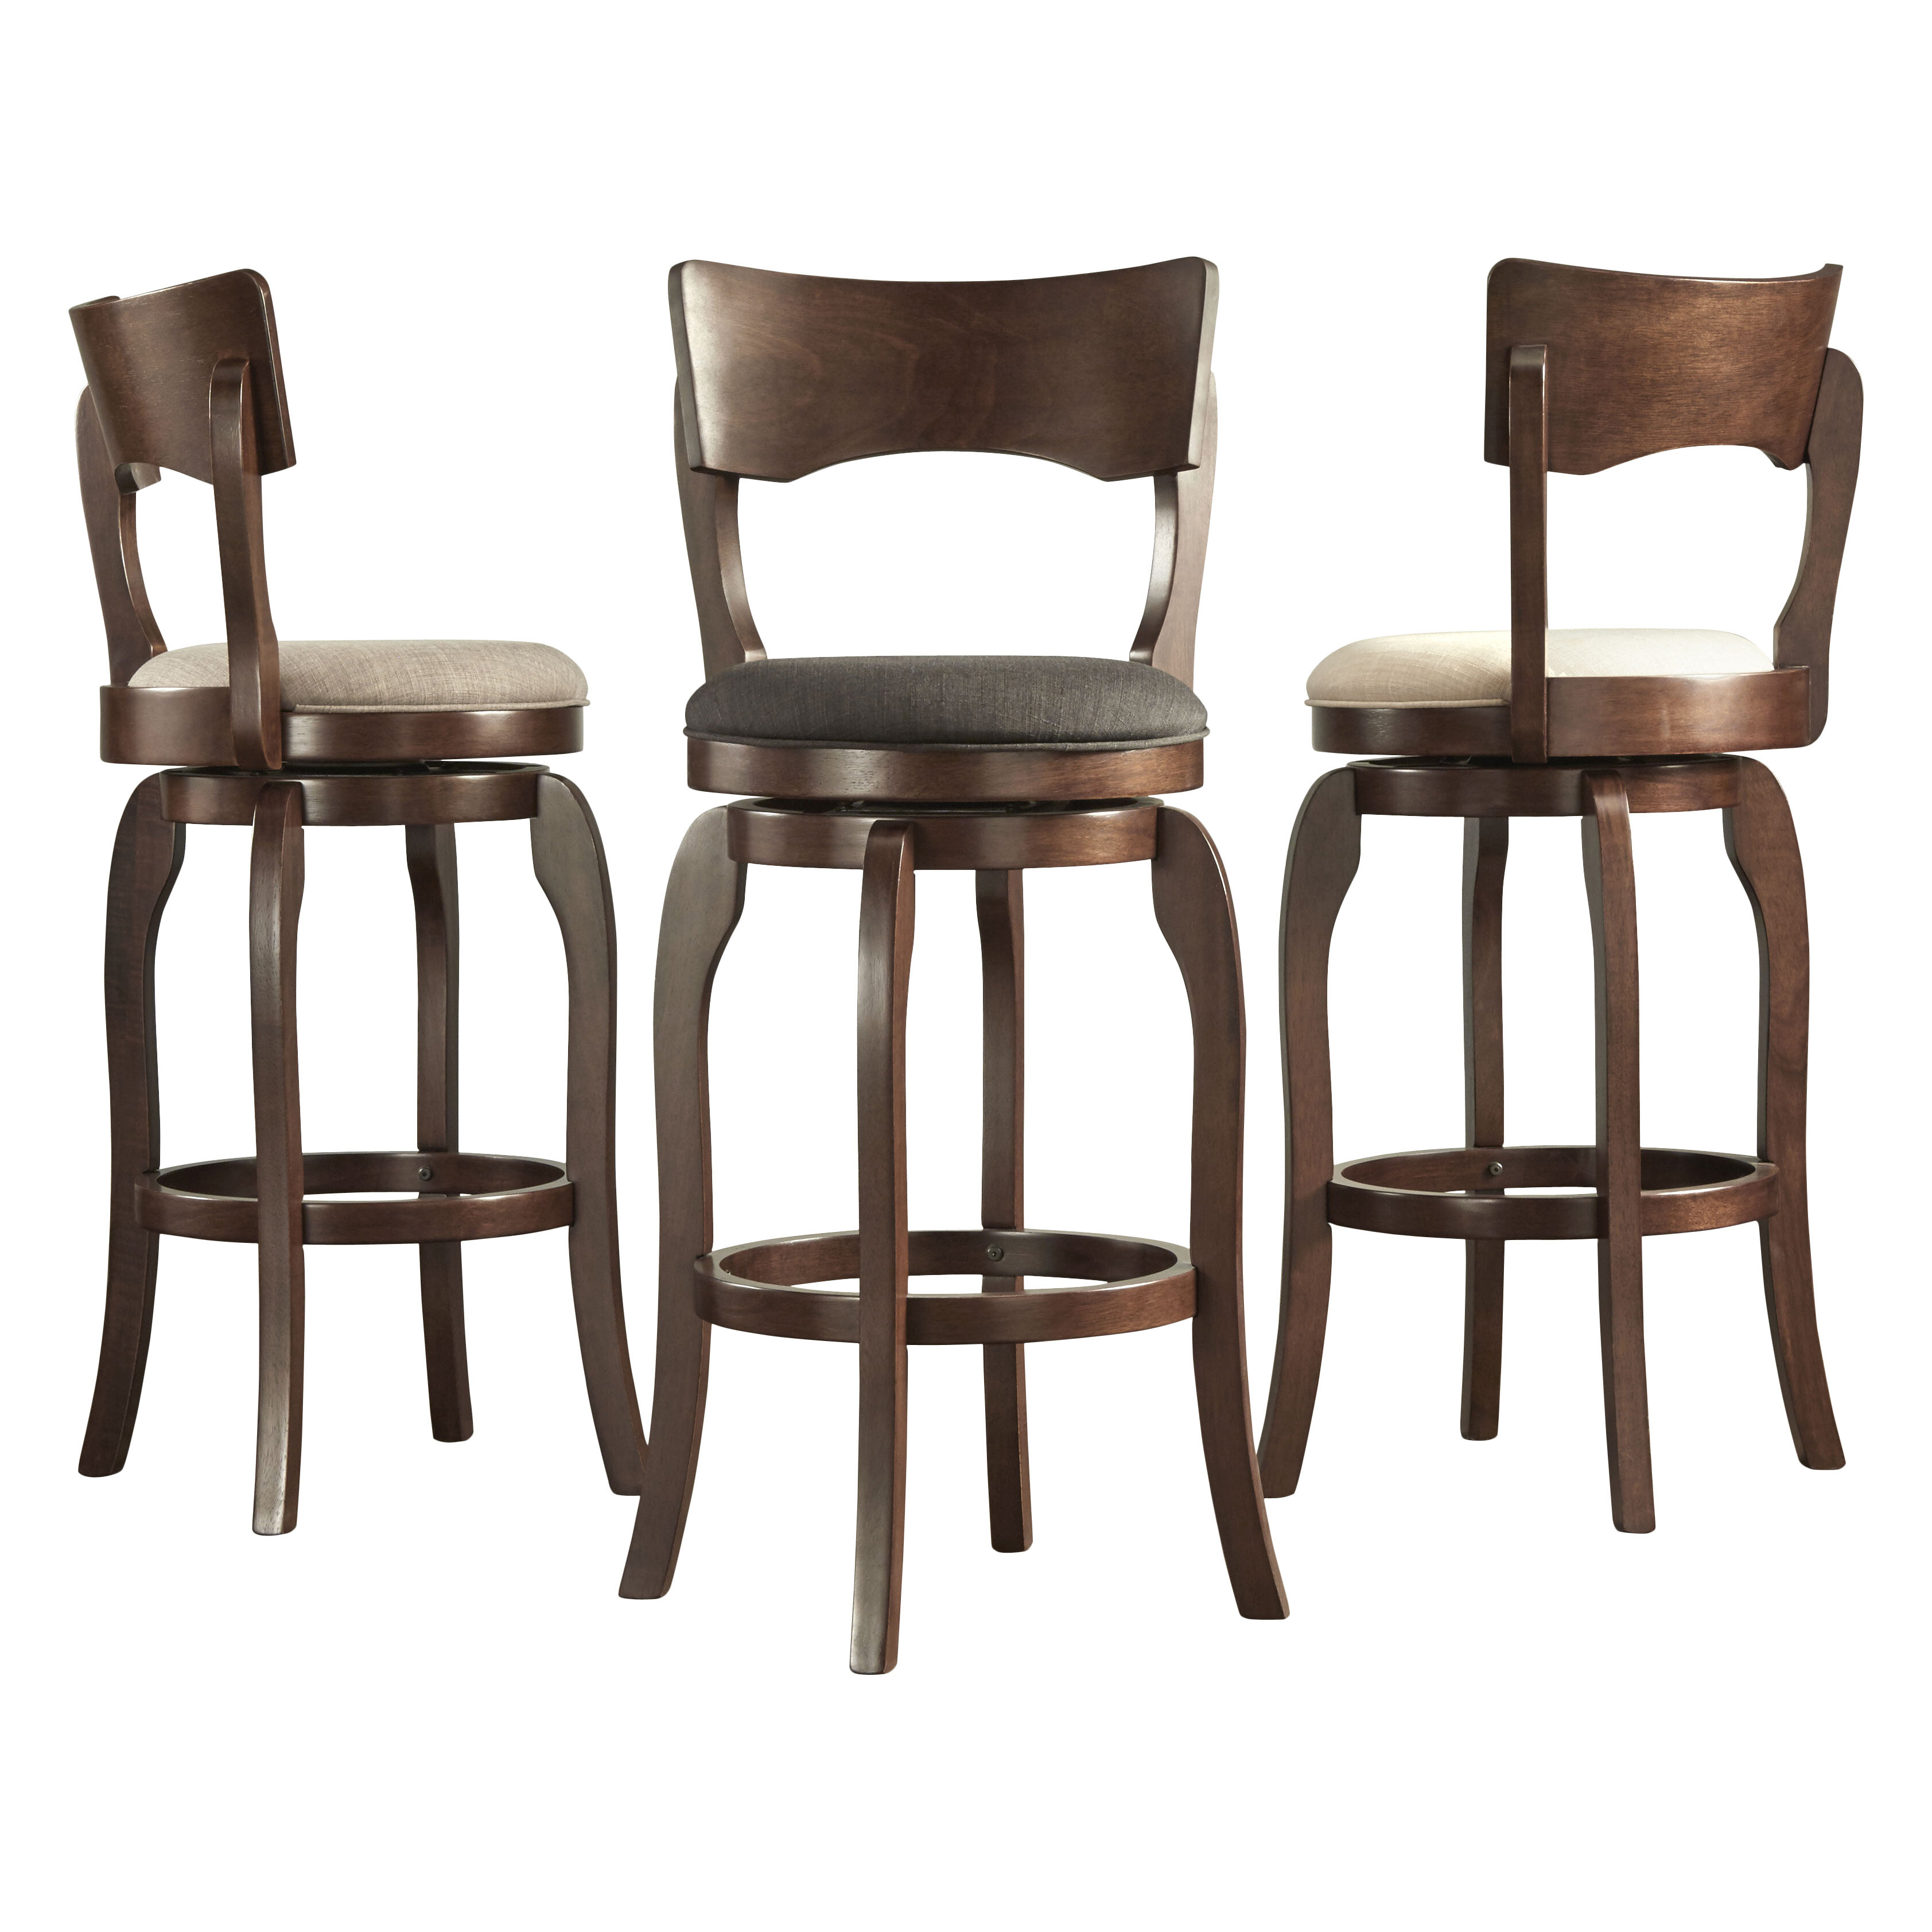 24 Swivel Bar Stools With Back Summervilleaugusta Org